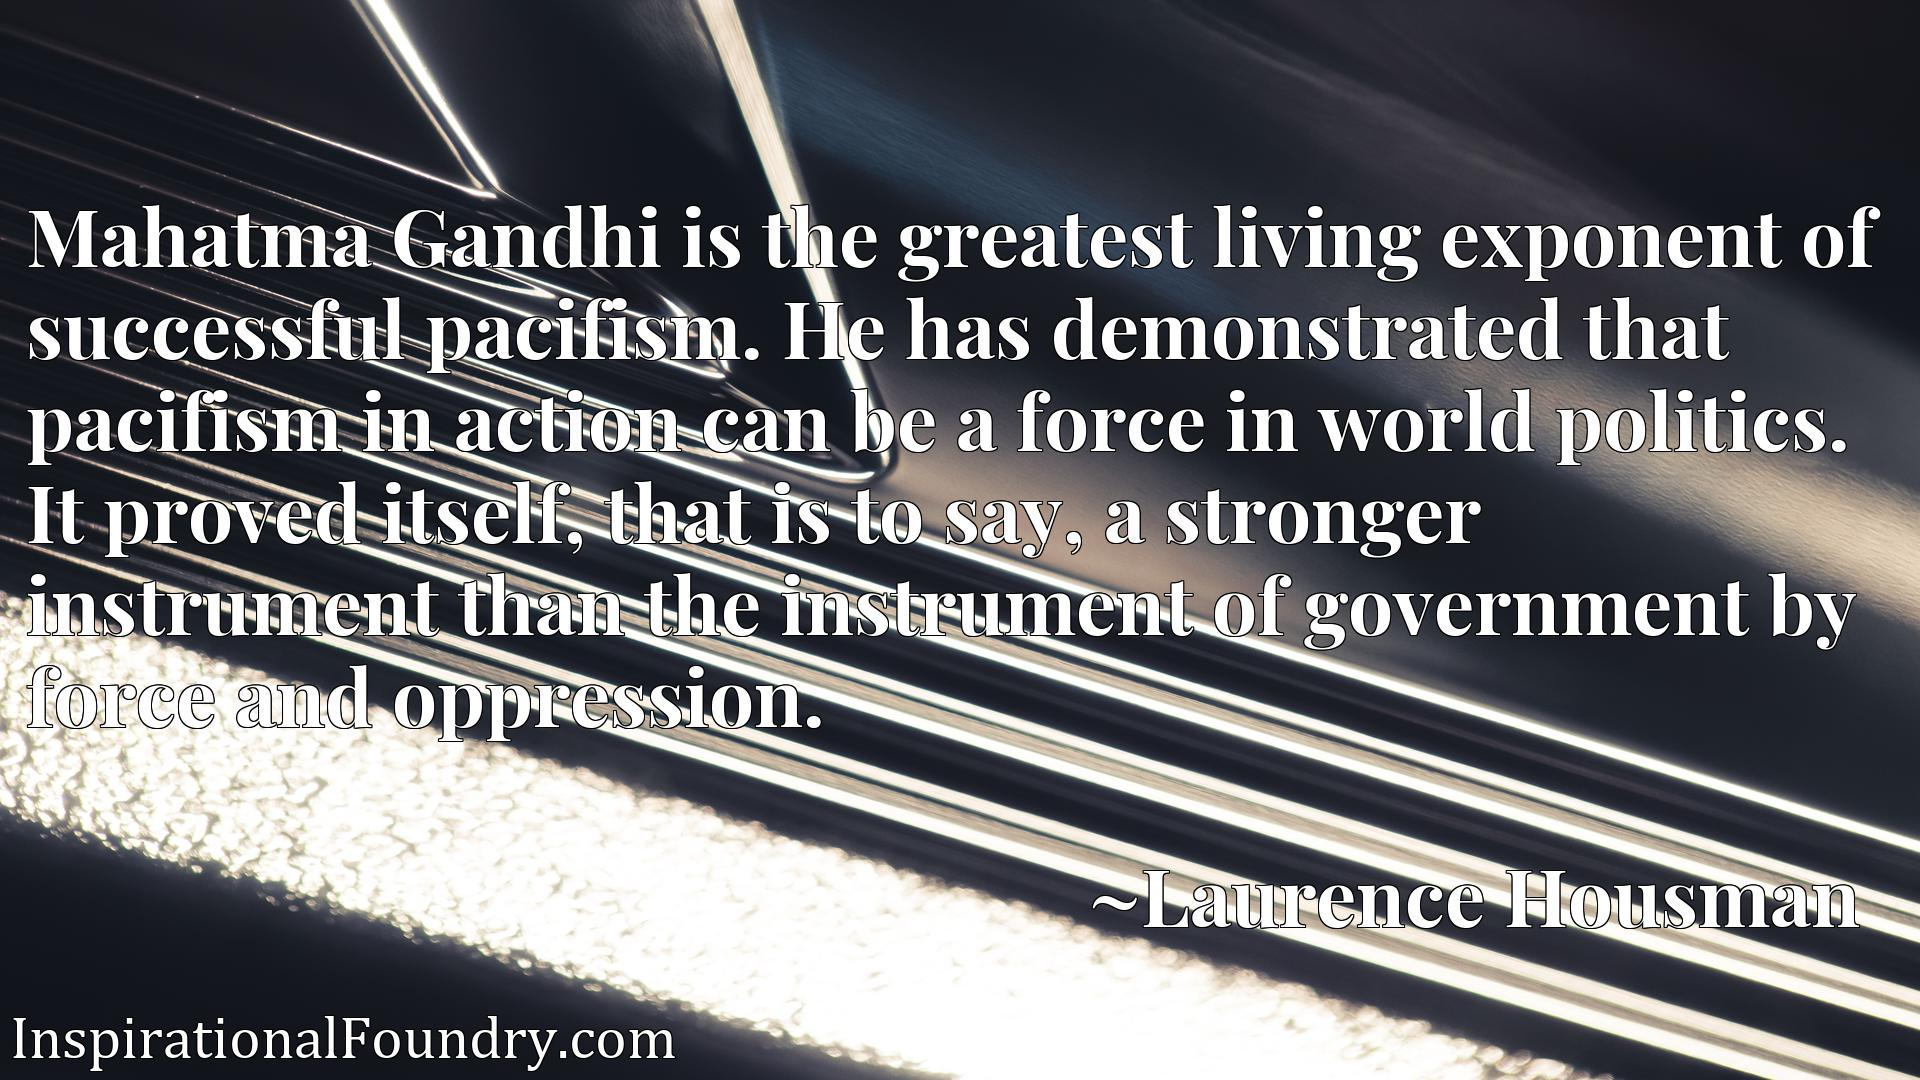 Mahatma Gandhi is the greatest living exponent of successful pacifism. He has demonstrated that pacifism in action can be a force in world politics. It proved itself, that is to say, a stronger instrument than the instrument of government by force and oppression.